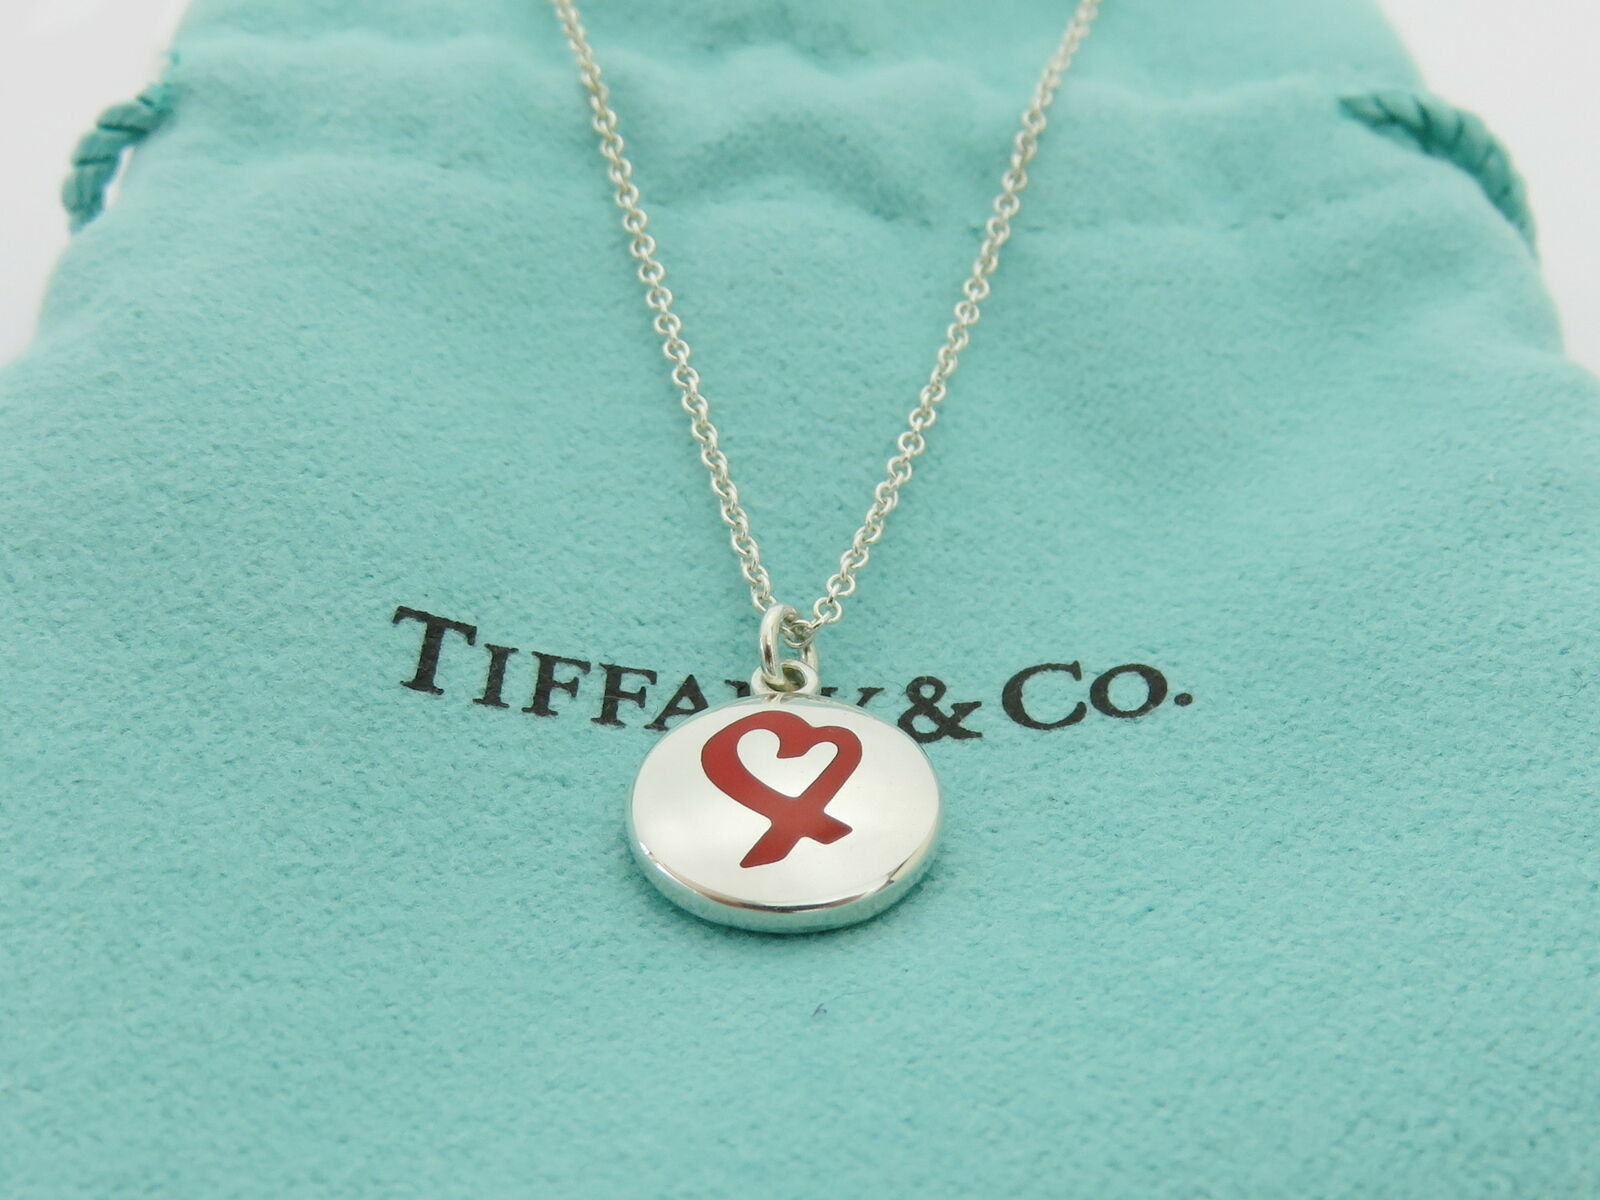 TIFFANY & CO Sterling Silver Filigree Heart Key Hole Pendant Necklace